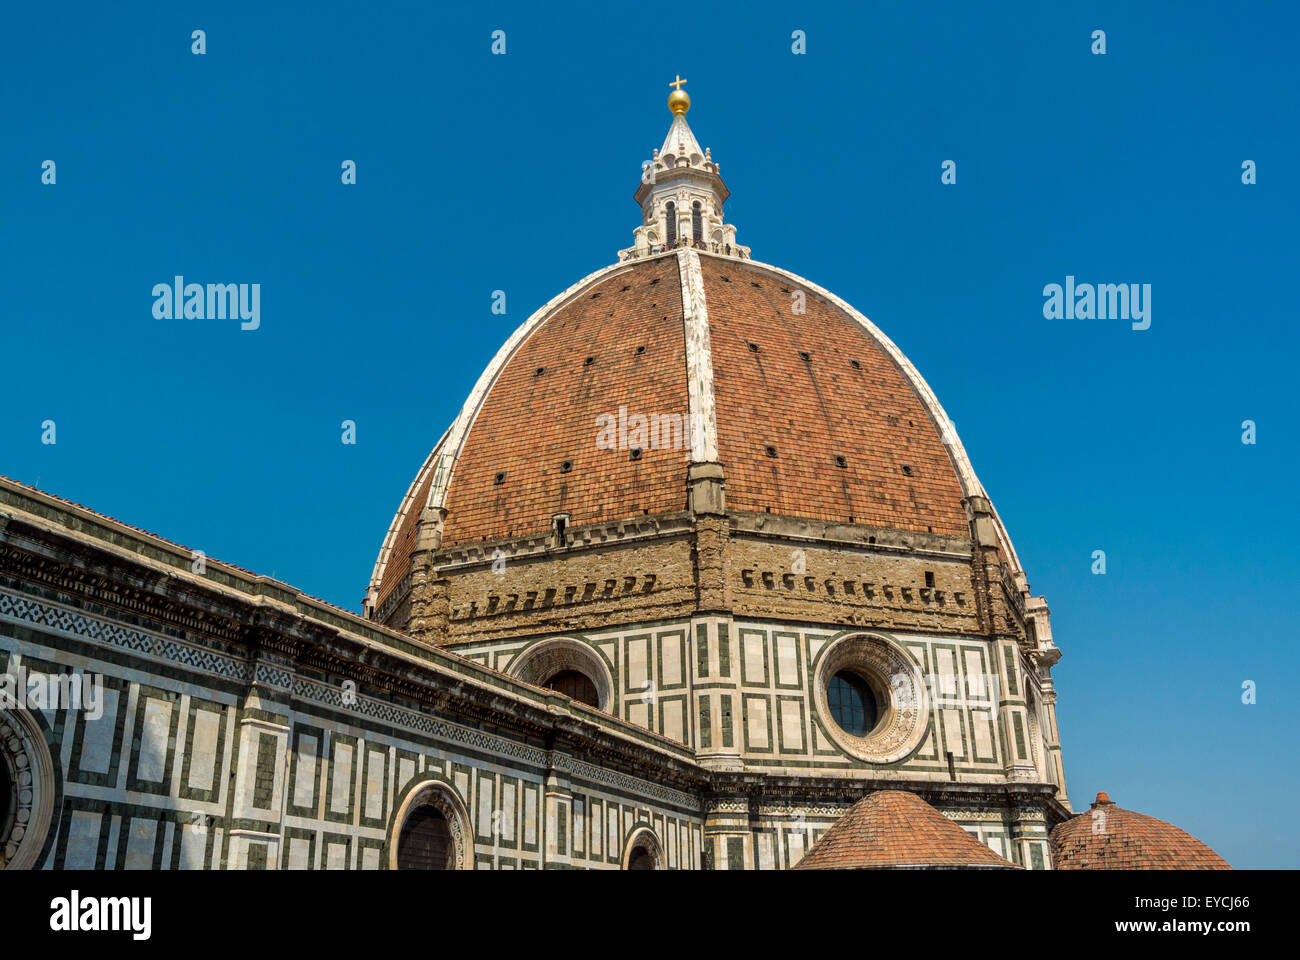 Florence Cathedral or Duomo dome designed by Flippo Brunelleschi. Florence, Italy. - Stock Image